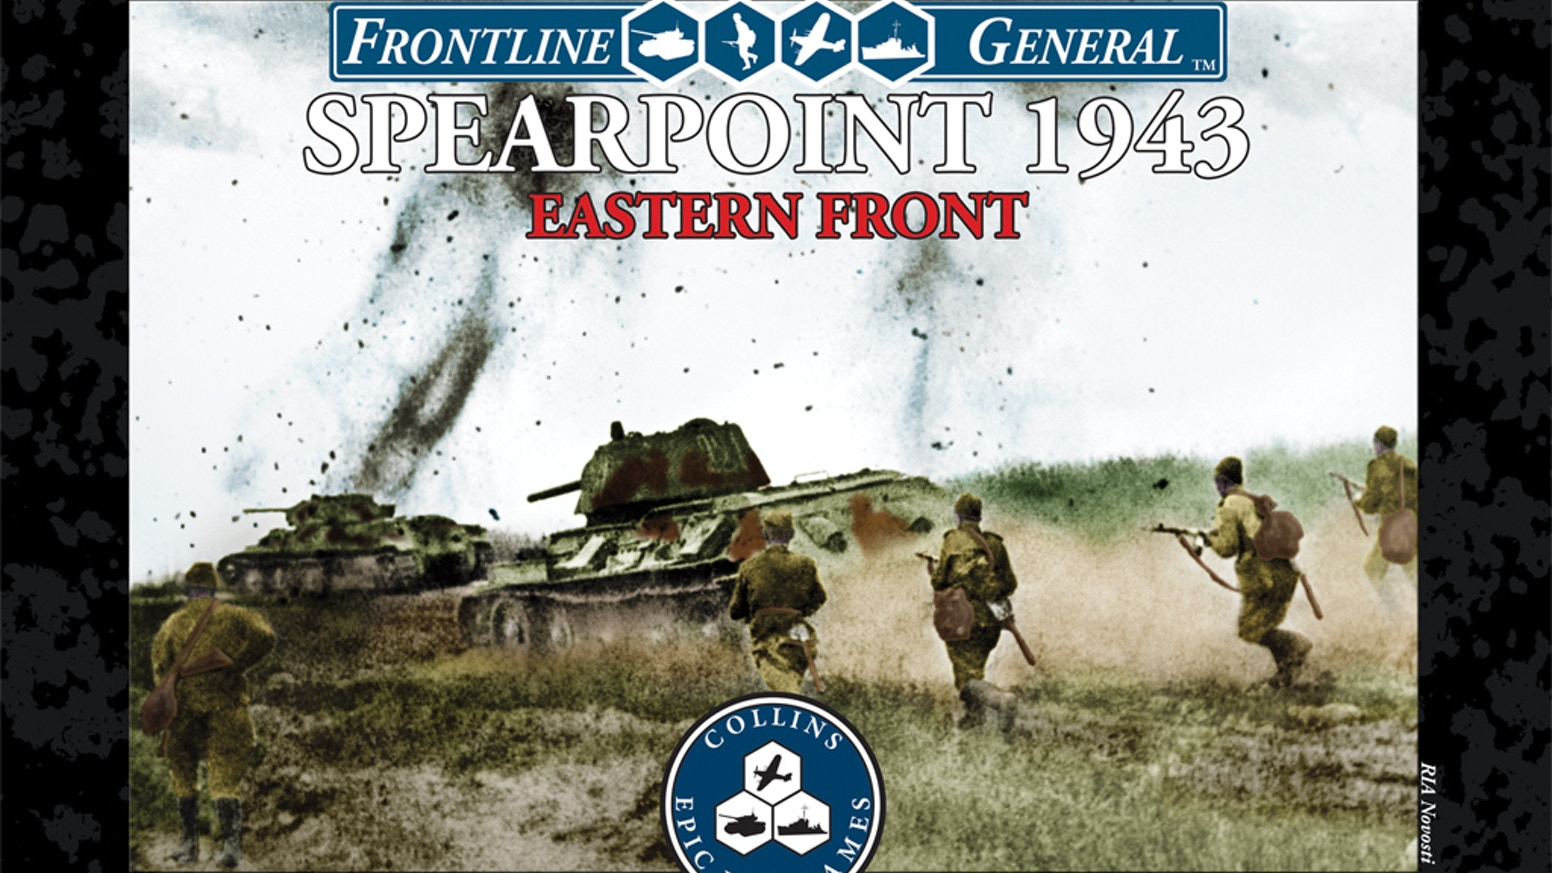 WWII Eastern Front-based 30-minute card wargame, third in the popular award-nominated Spearpoint 1943 line.